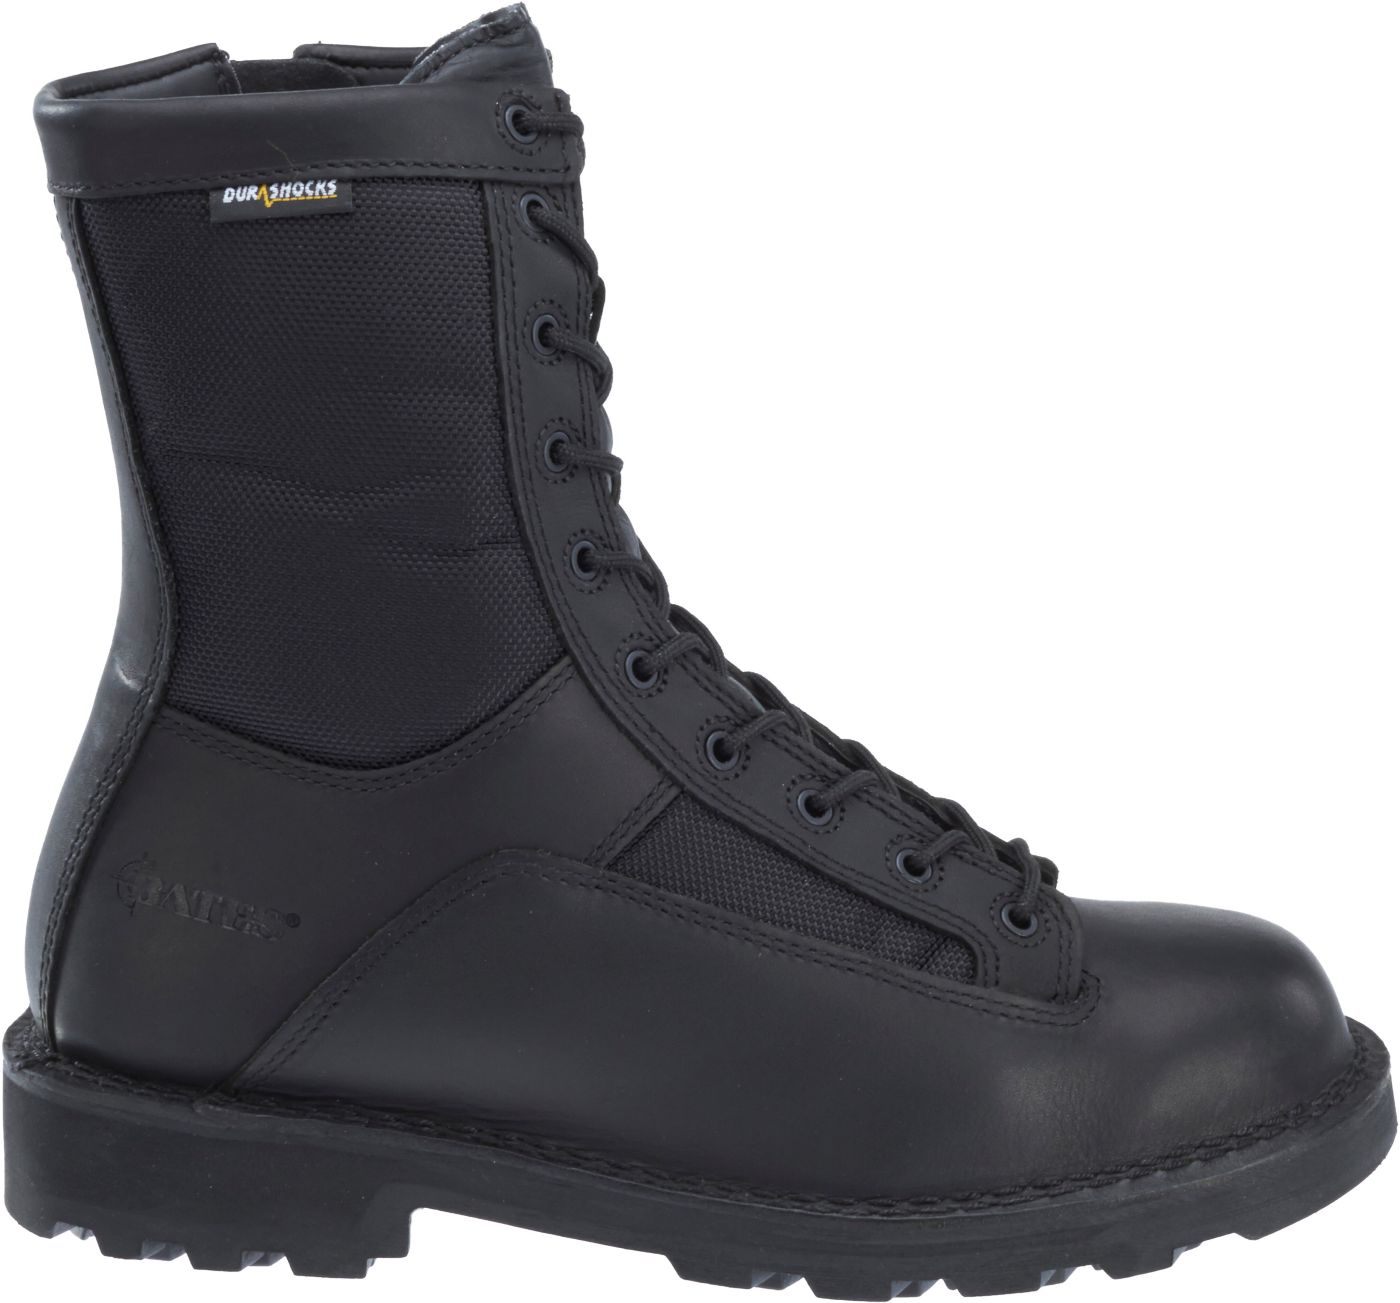 Bates Men's 8'' DuraShocks Lace-to-Toe Side Zip Work Boots